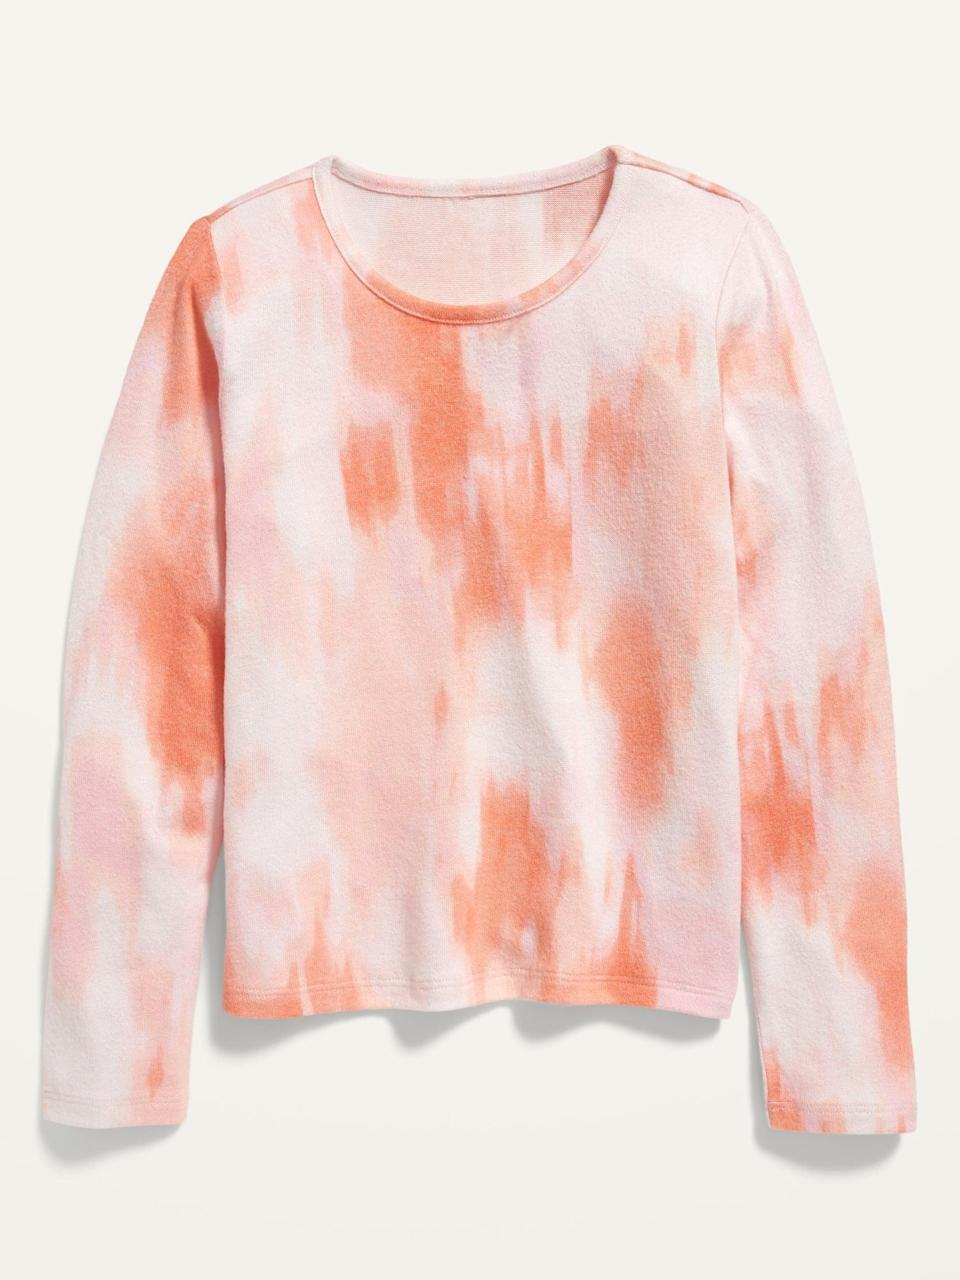 <p>This <span>Cozy Tie-Dye Cropped Pullover Sweater</span> ($20) will make a colorful addition to your wardrobe.</p>